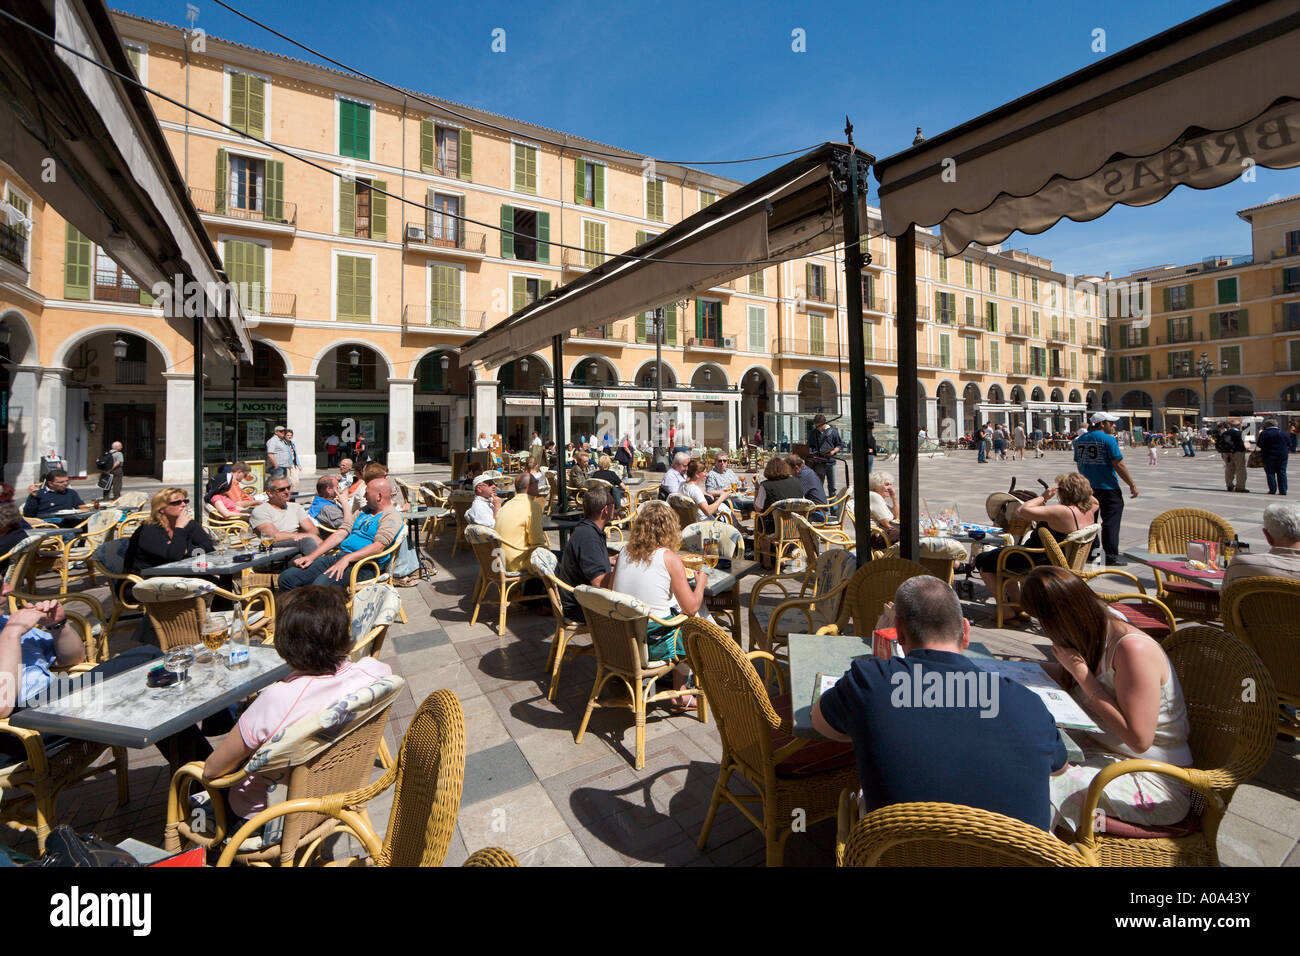 Sidewalk cafe in the  Plaza Mayor (Placa Major), Palma, Mallorca, Balearic Islands, Spain - Stock Image